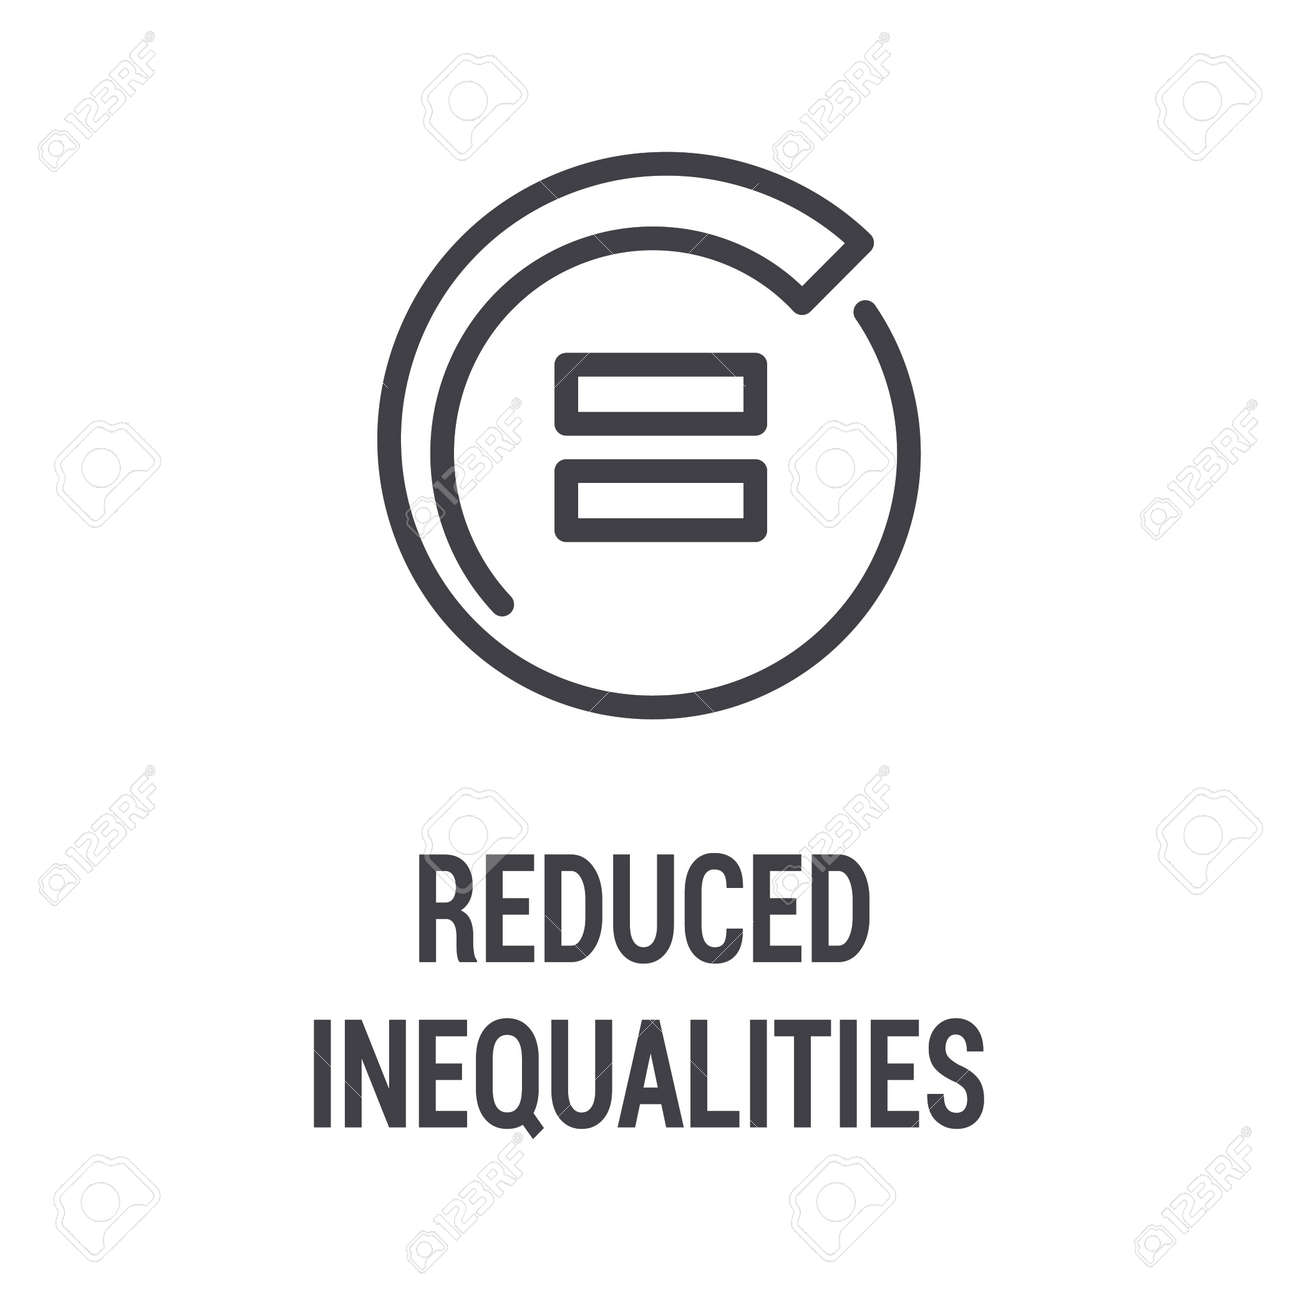 reduced inequalities black icon corporate social responsibility royalty free cliparts vectors and stock illustration image 139456932 reduced inequalities black icon corporate social responsibility